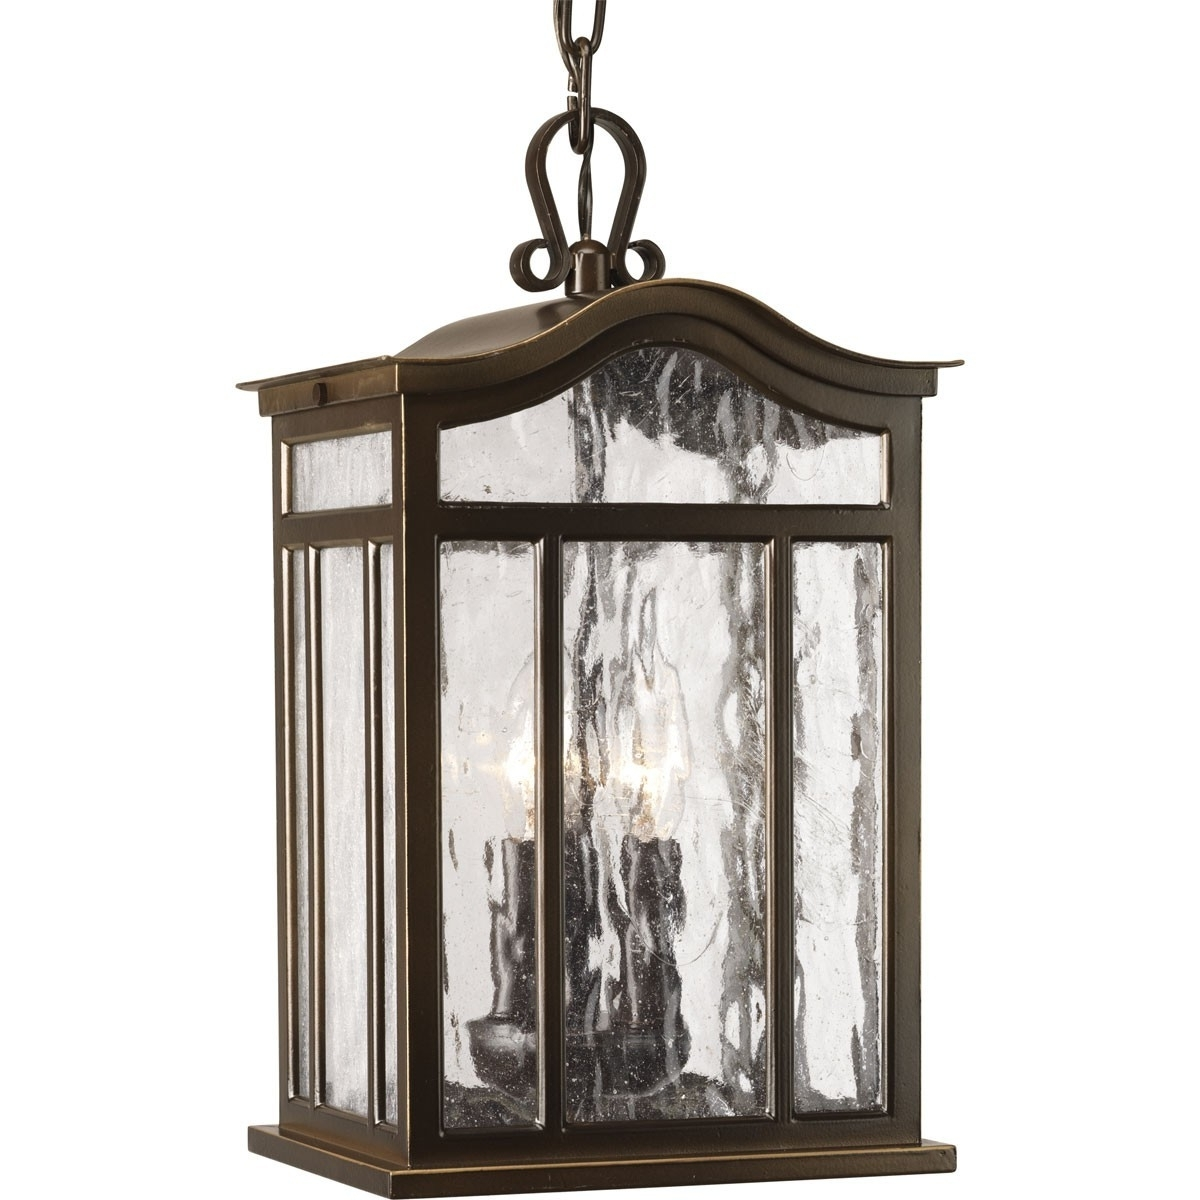 Outdoor Hanging Lanterns From Australia In Most Up To Date Lamp: Casual European Style Three Light Outdoor Hanging Lantern (View 10 of 20)